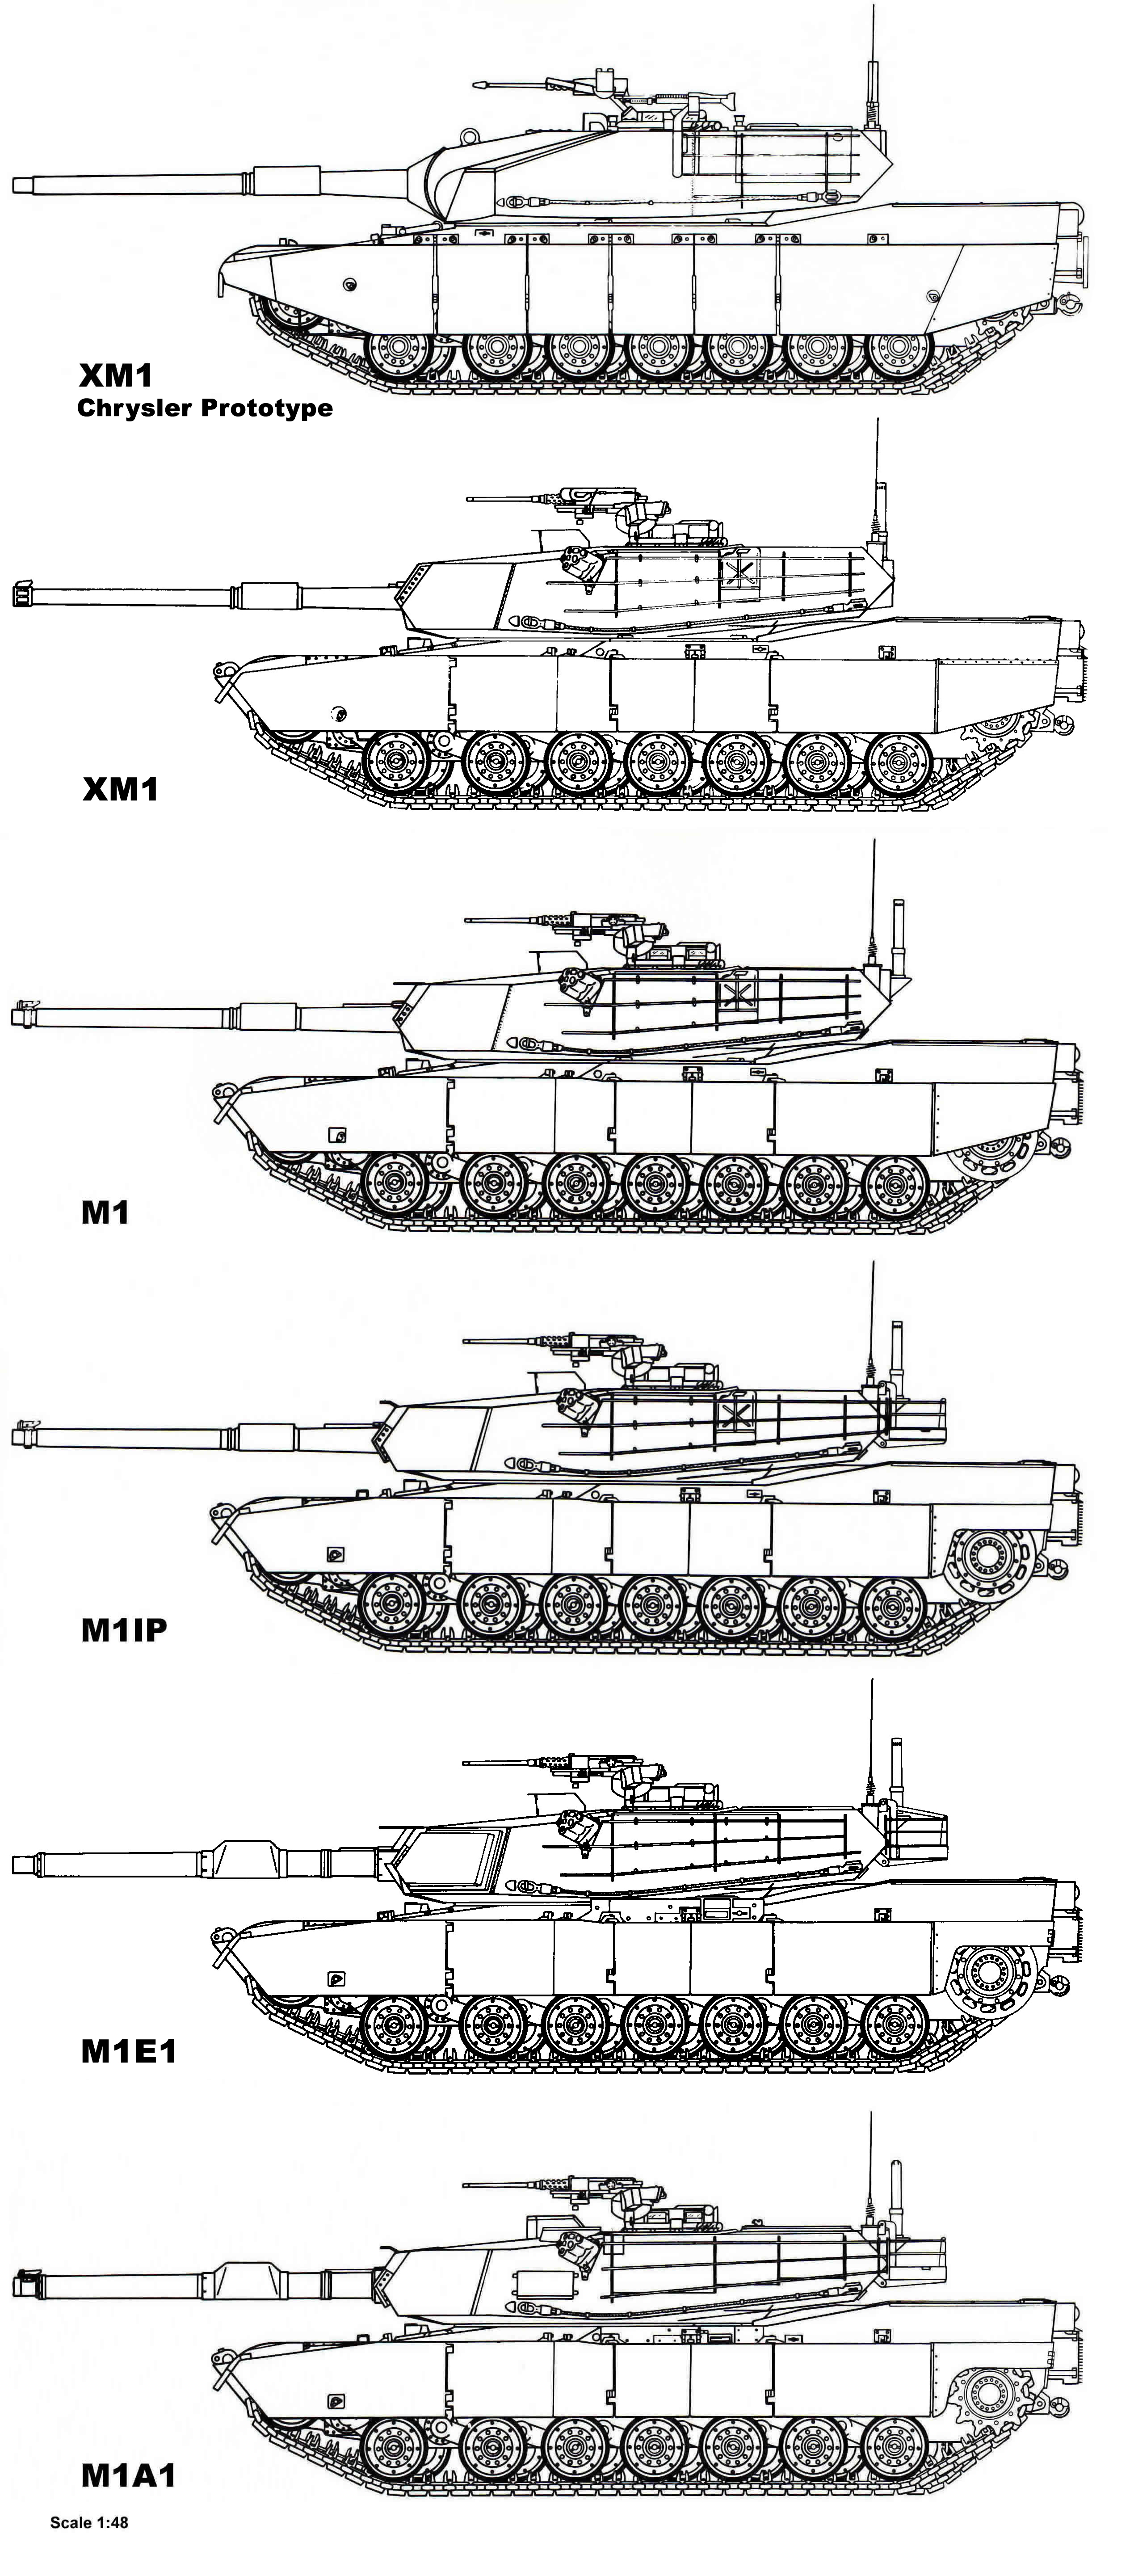 http://www.mihalko-family.com/Images/Military/Tanks/4-View%20M1%20Abrams%20Comparison.jpg